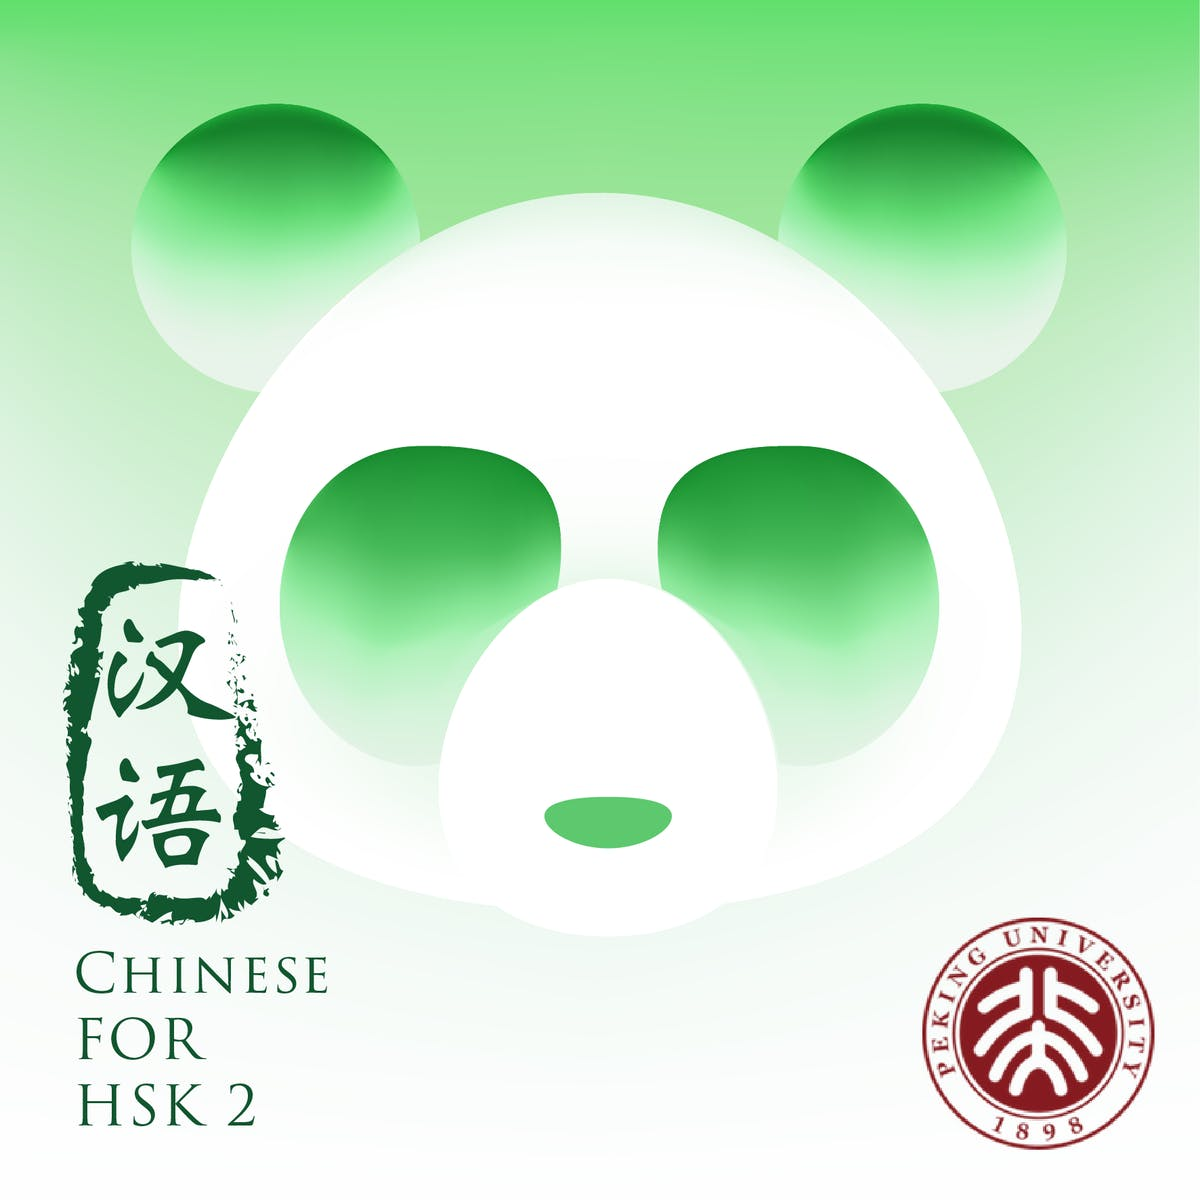 Chinese for HSK 2